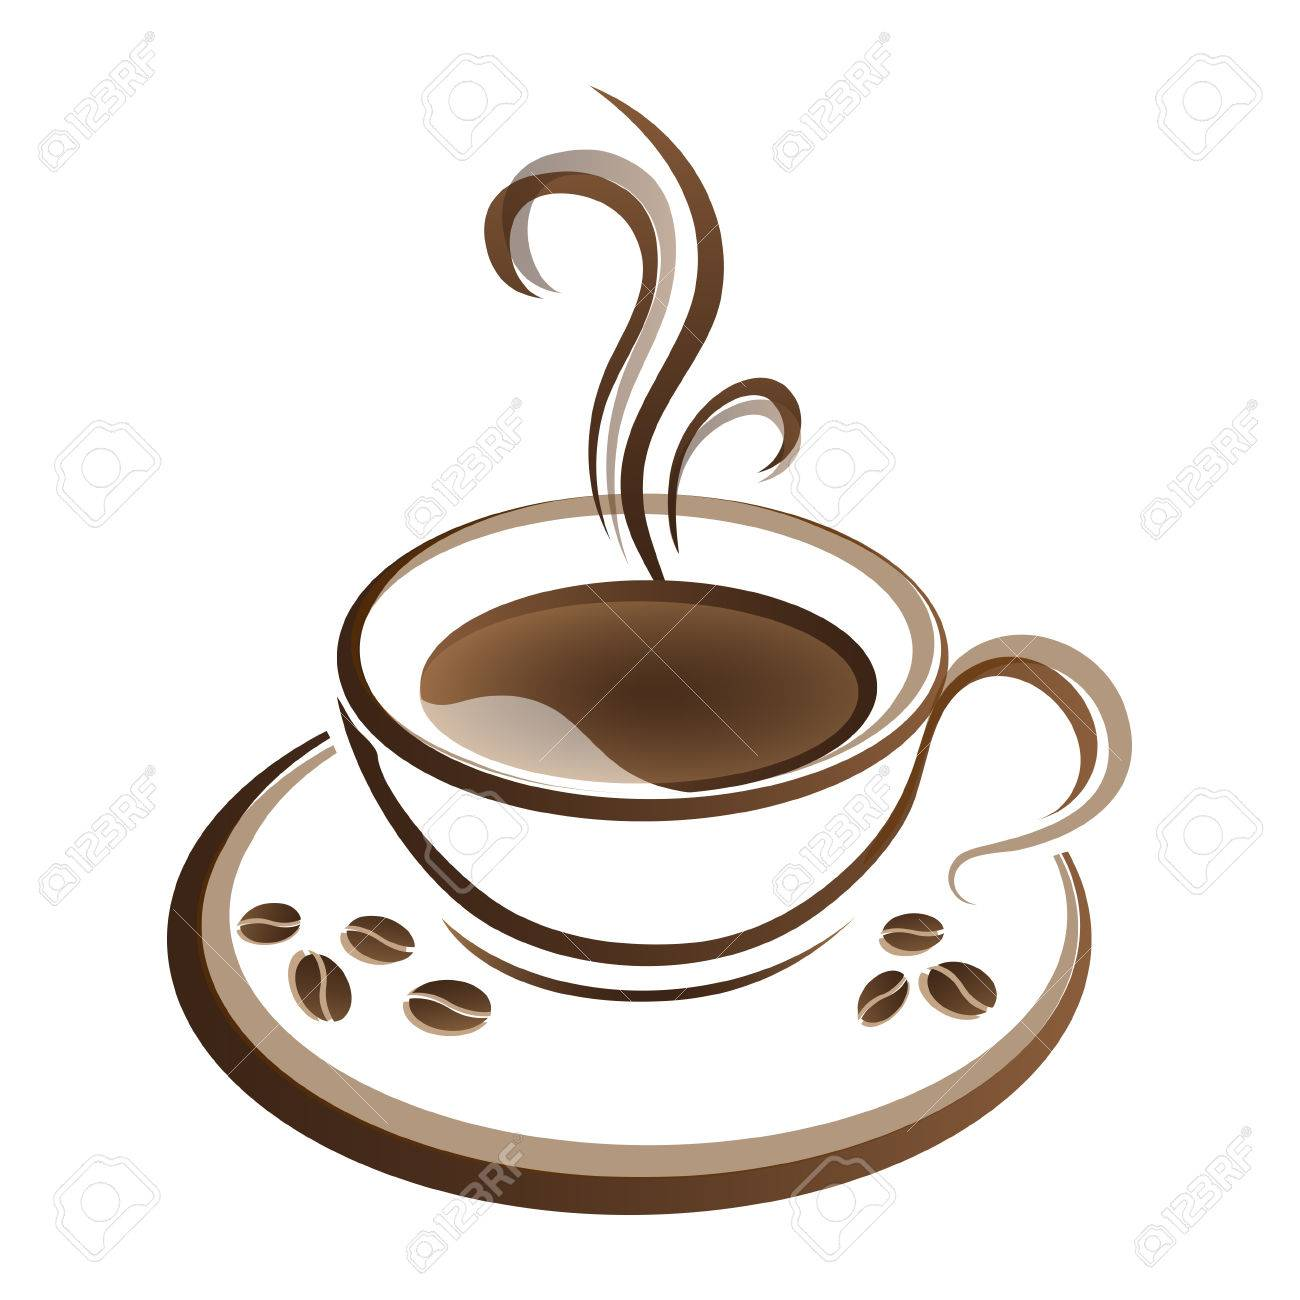 hot coffee cup vector on a white background royalty free cliparts rh 123rf com cup vector logo cup vectoriel